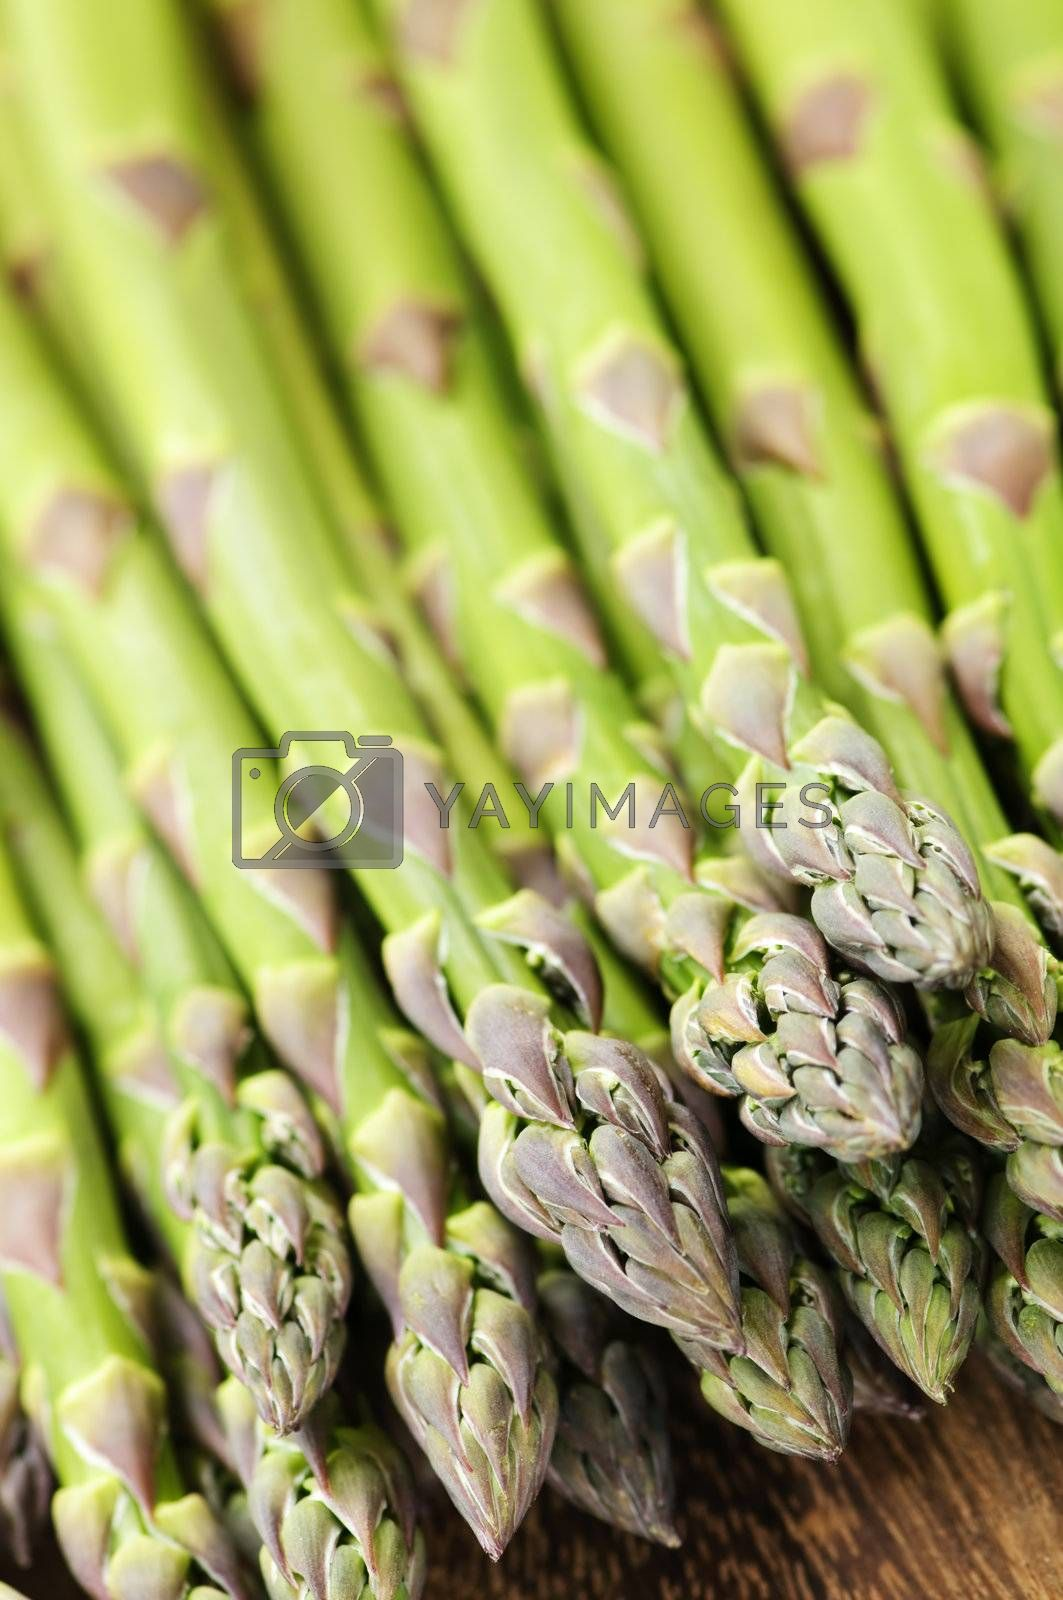 Royalty free image of Asparagus by elenathewise